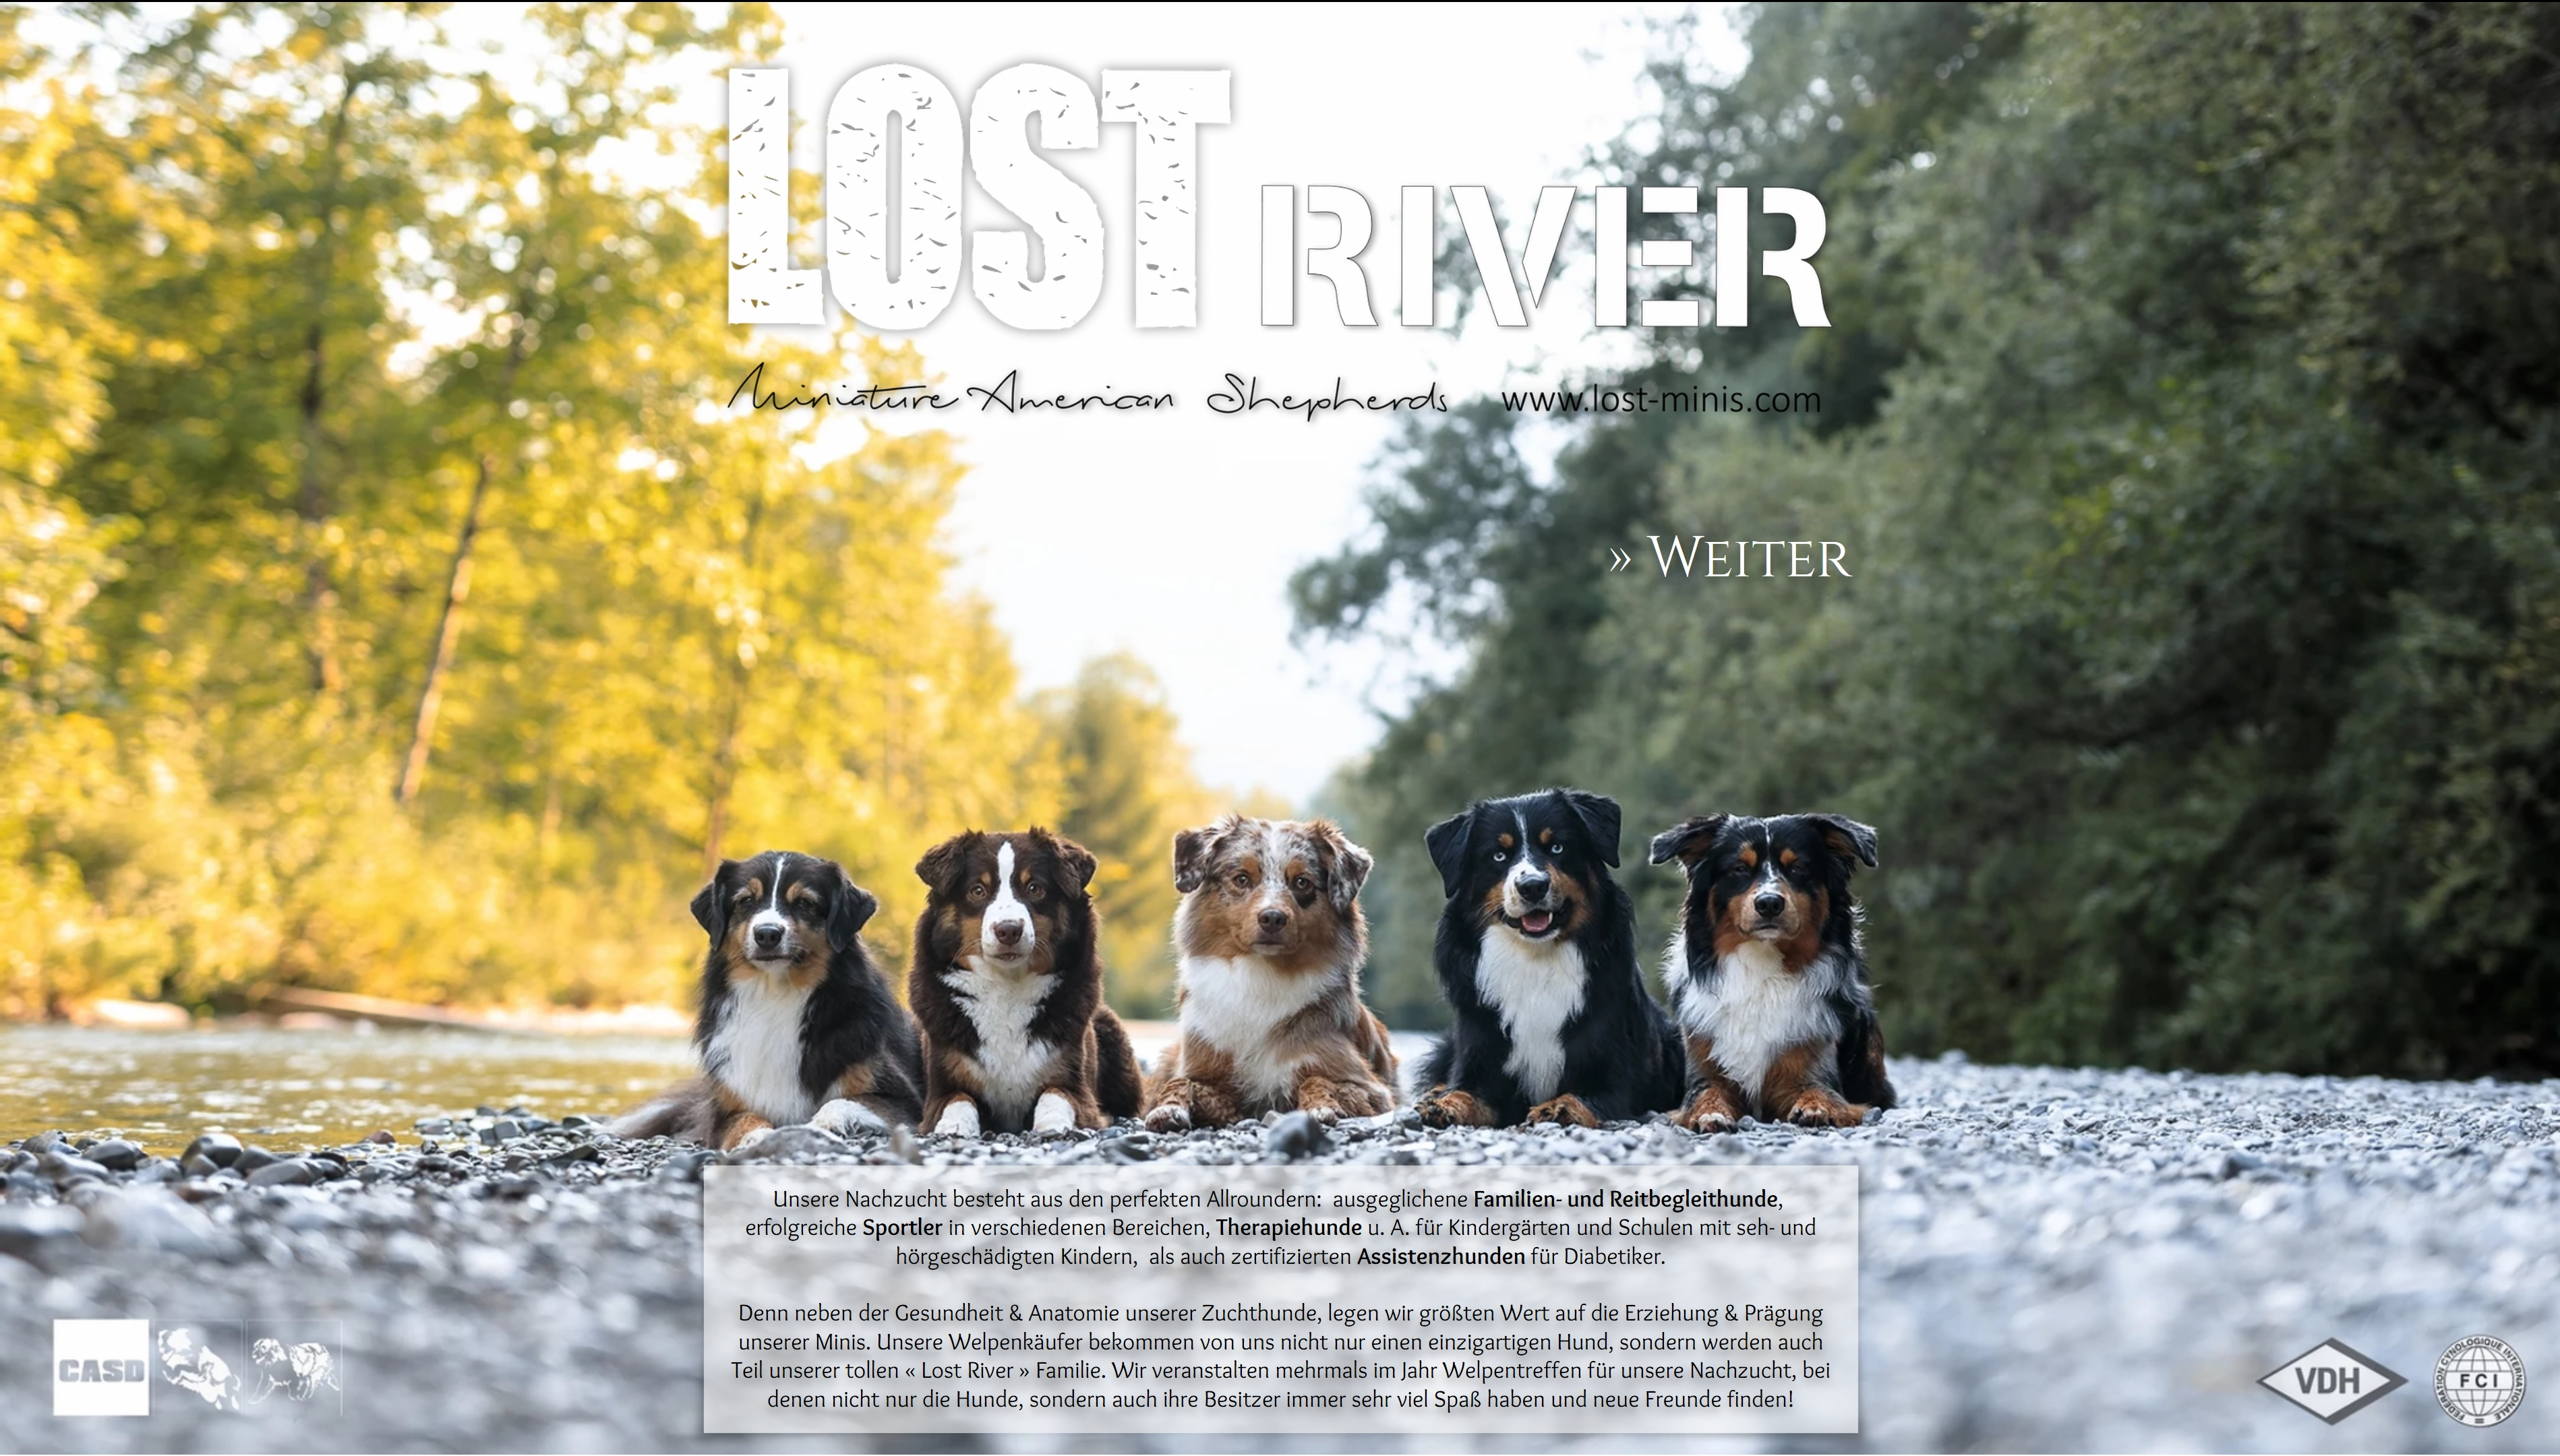 Lost River Mini American Shepherds